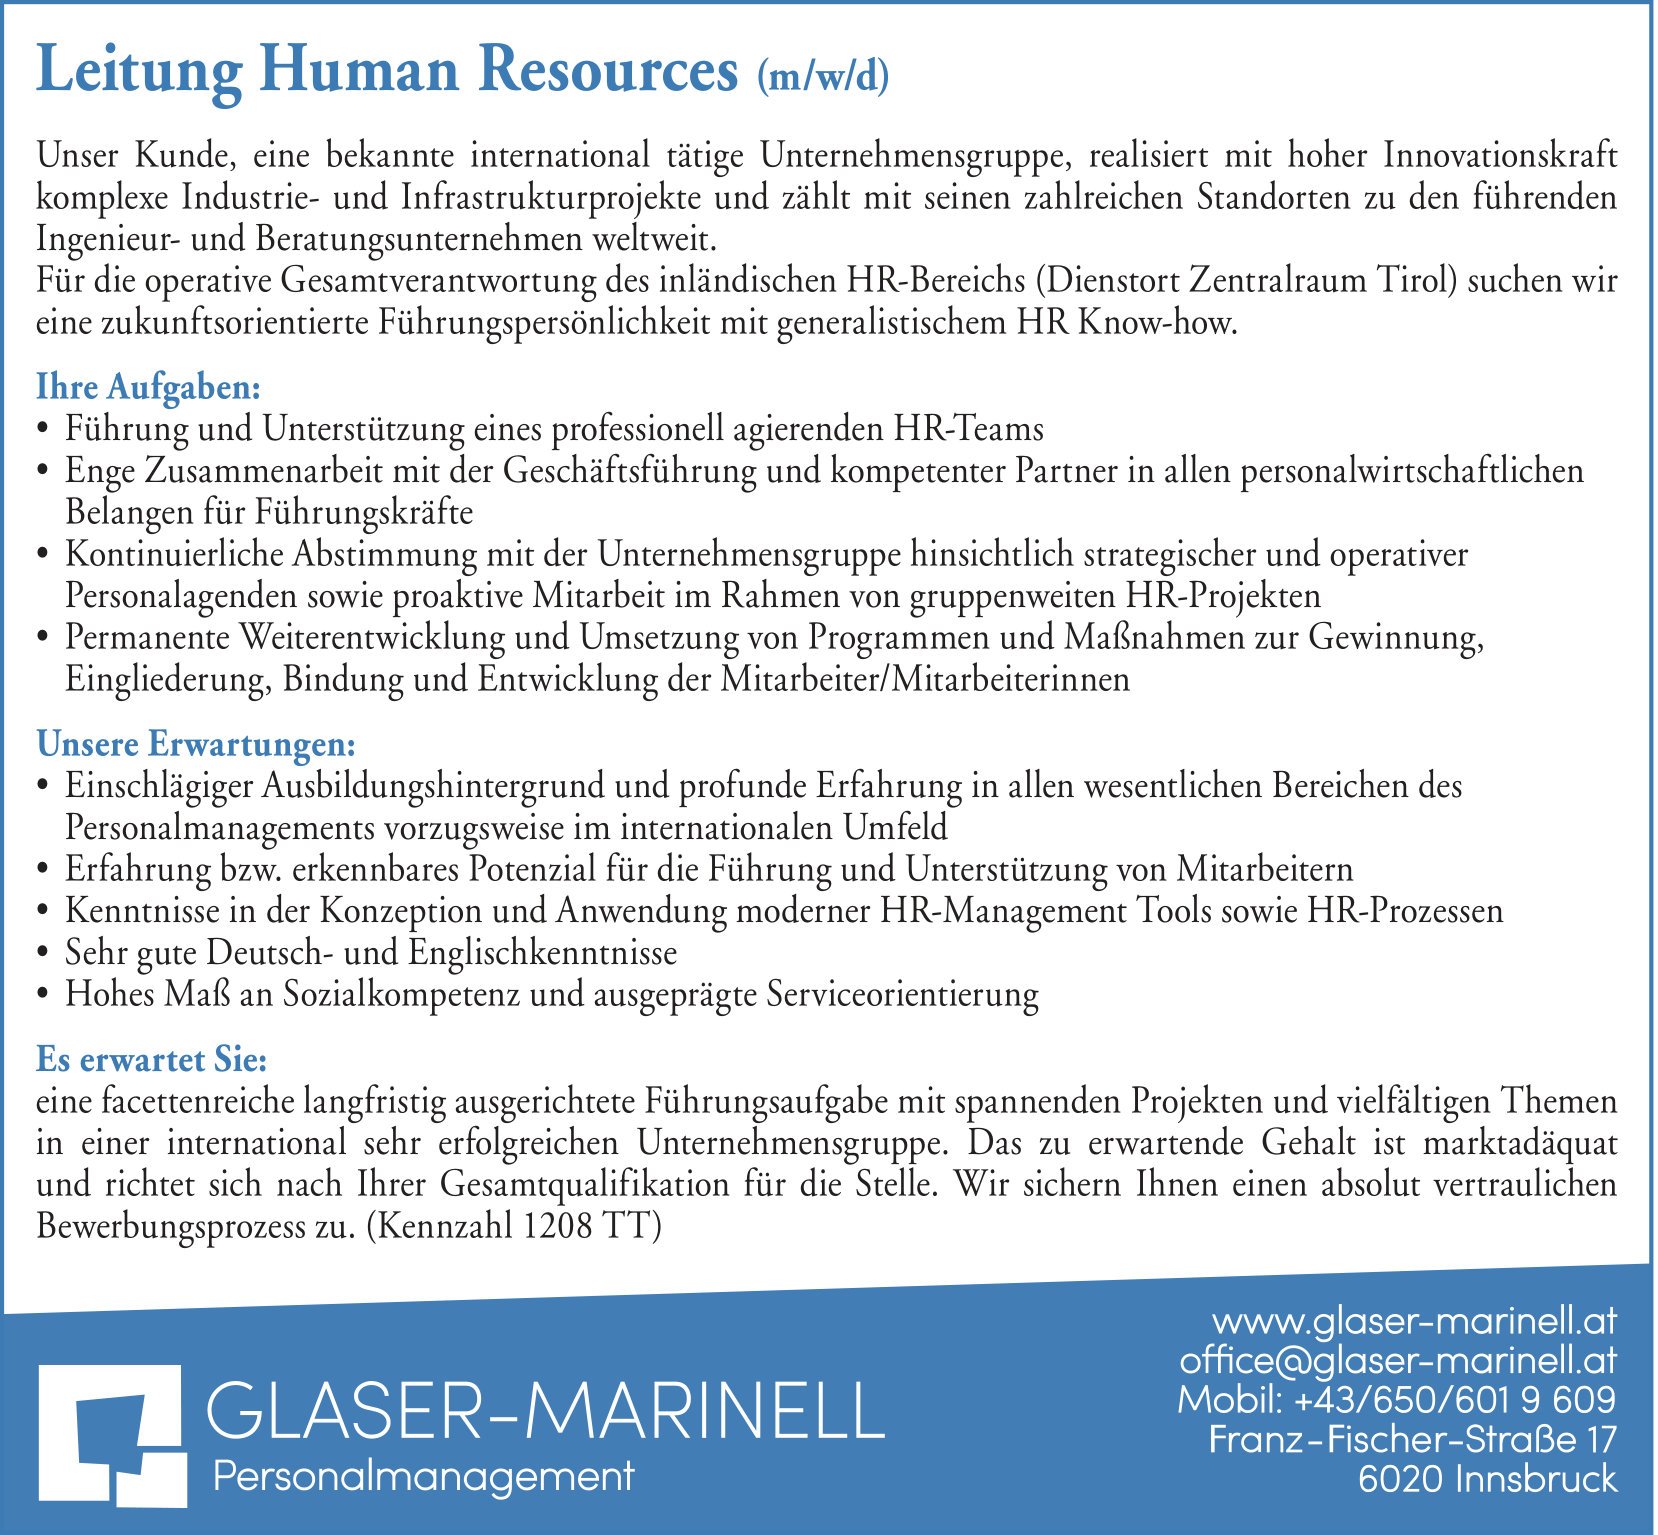 Leitung Human Resources (m/w/d)